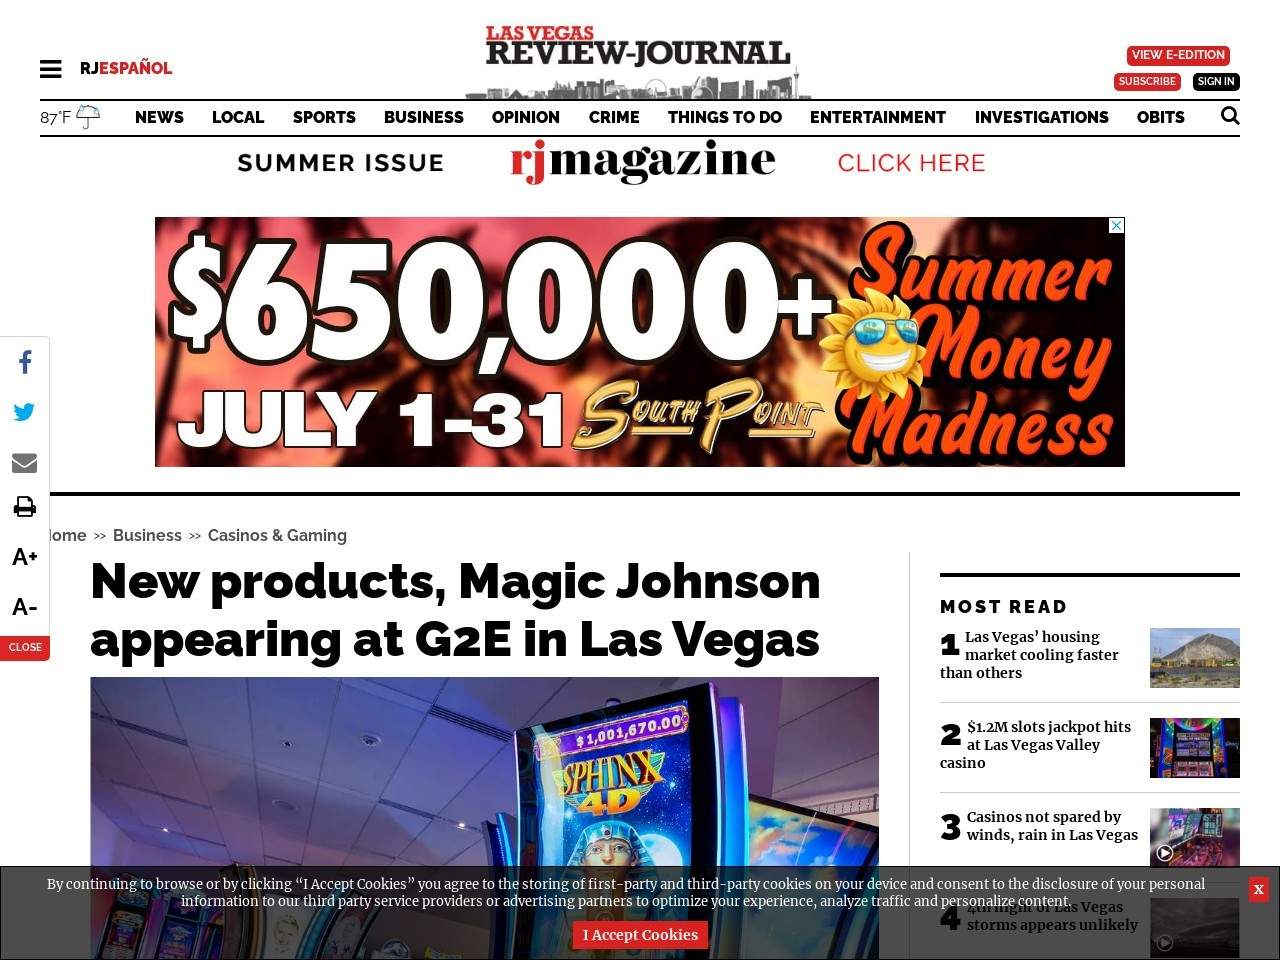 New products, Magic Johnson appearing at G2E in Las Vegas